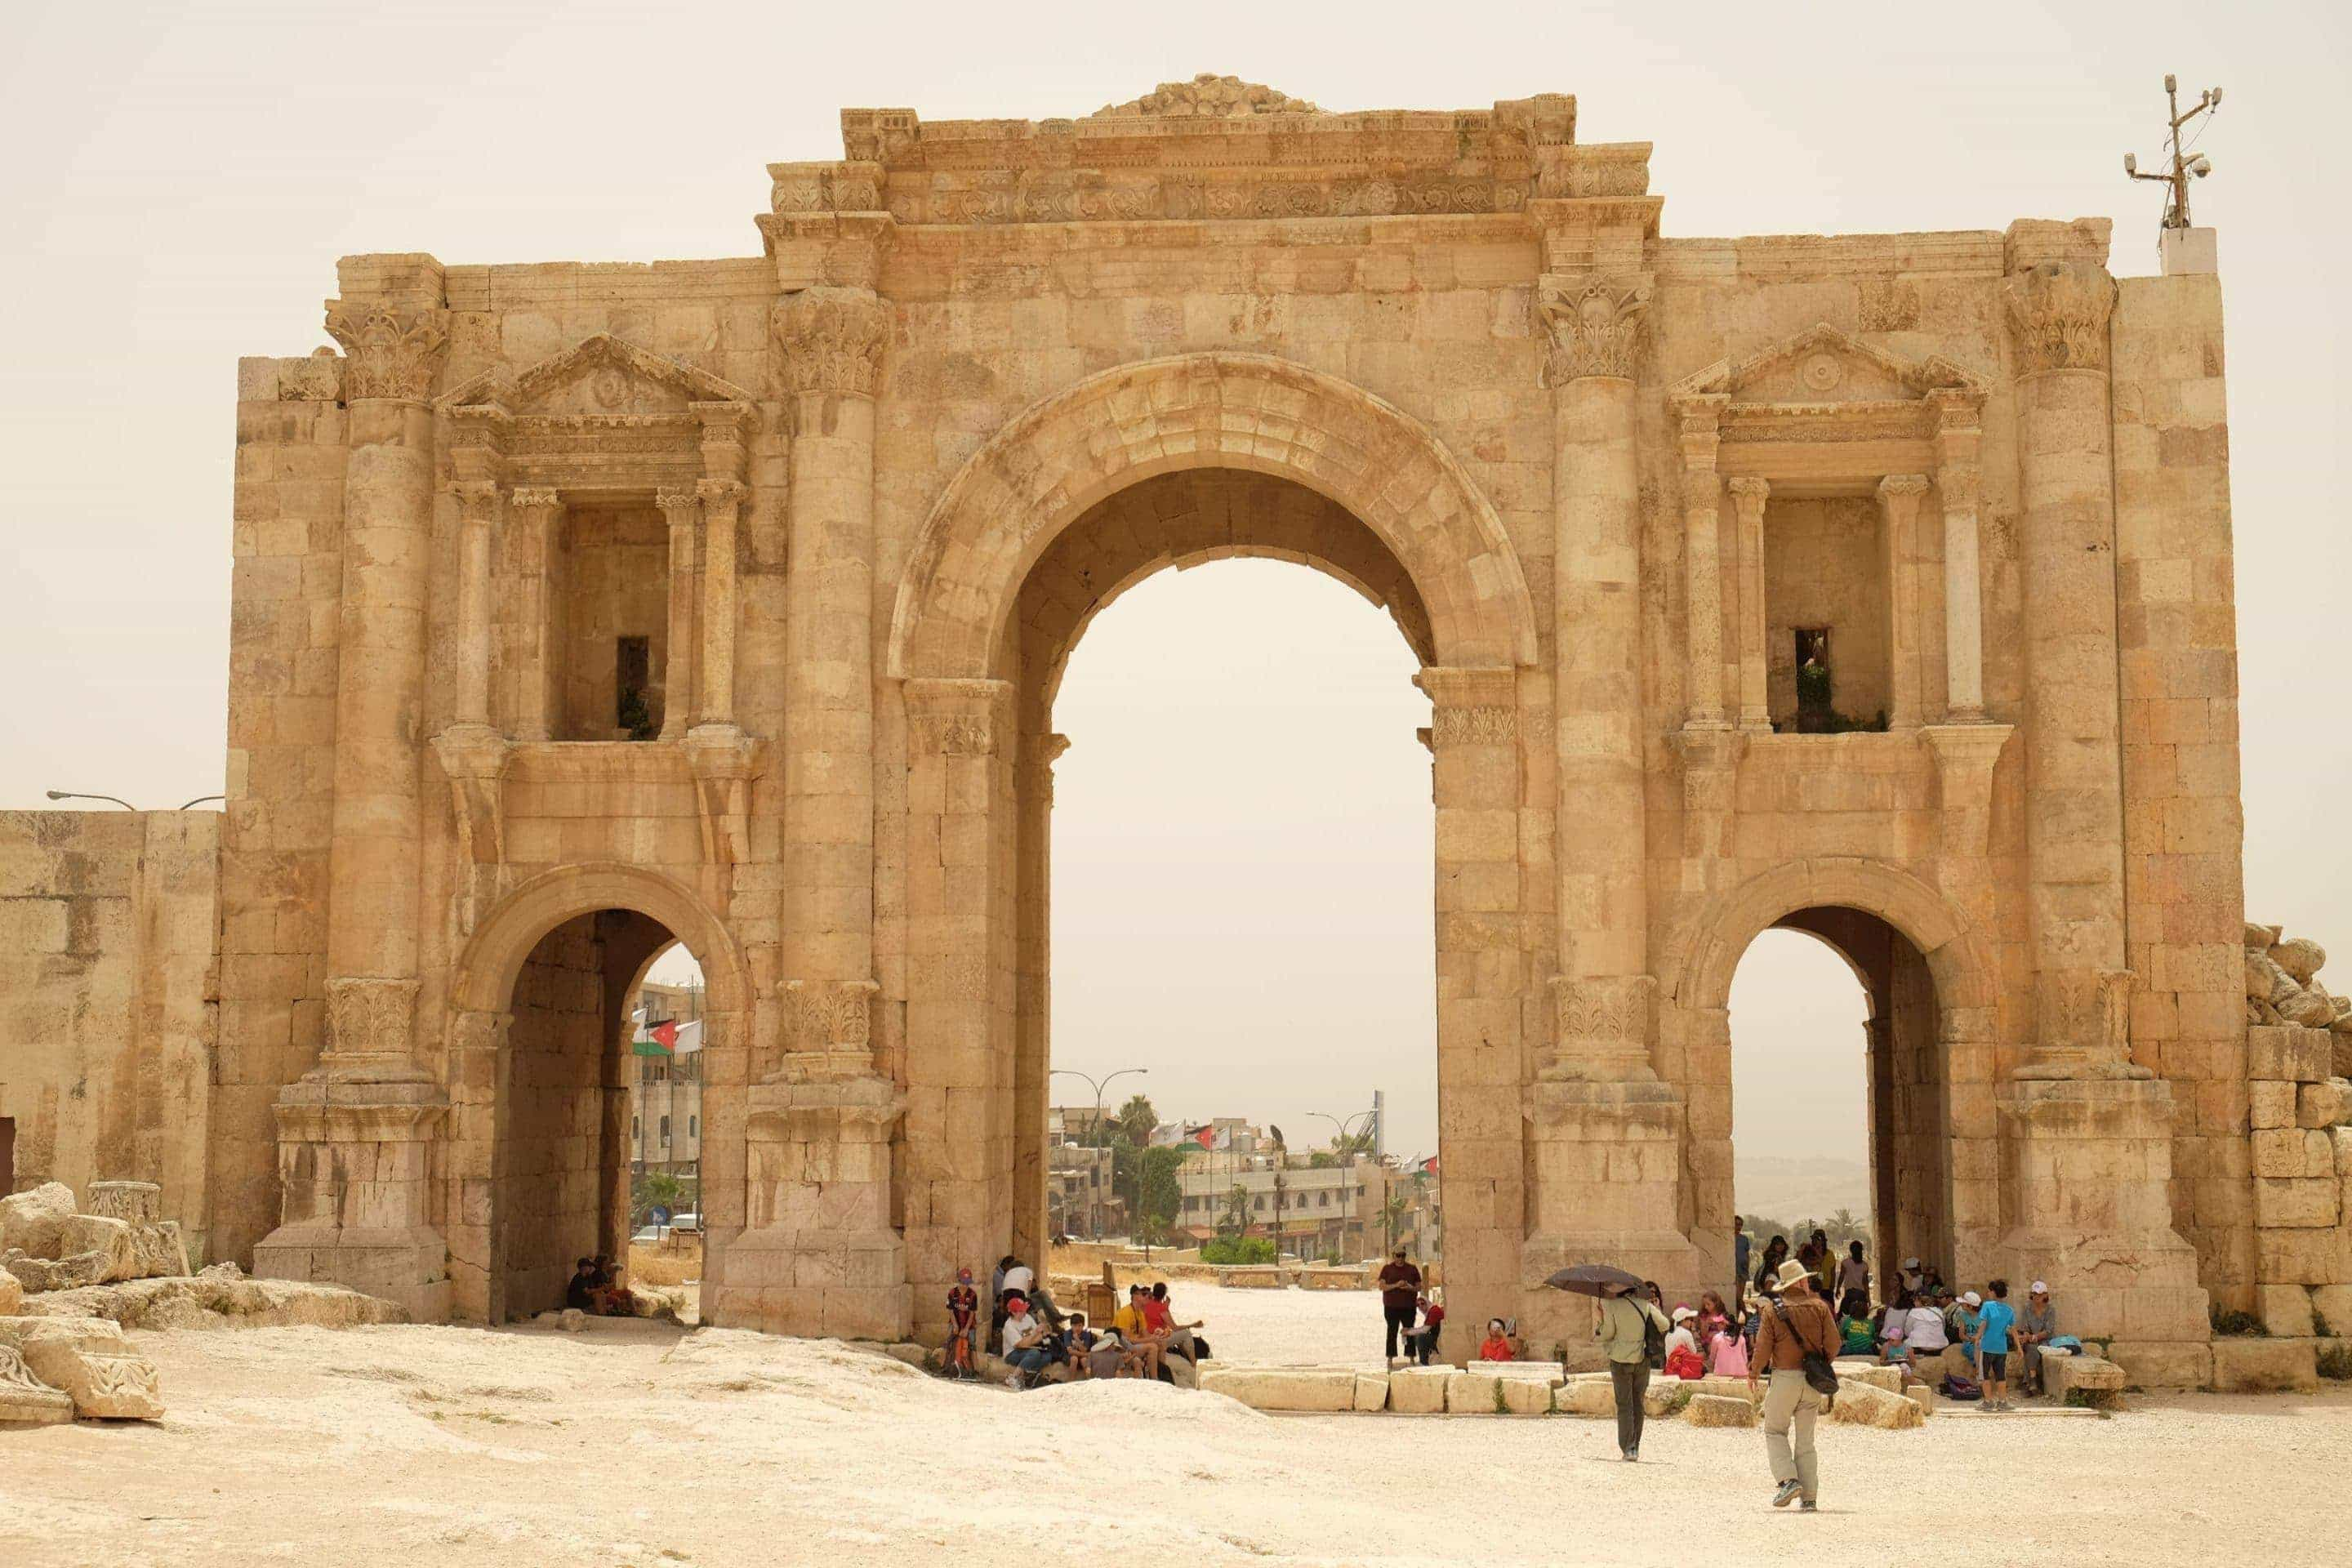 Hadrian's Gate. Main entrance to Jerash. Photo: Genevieve Hathaway Photography.